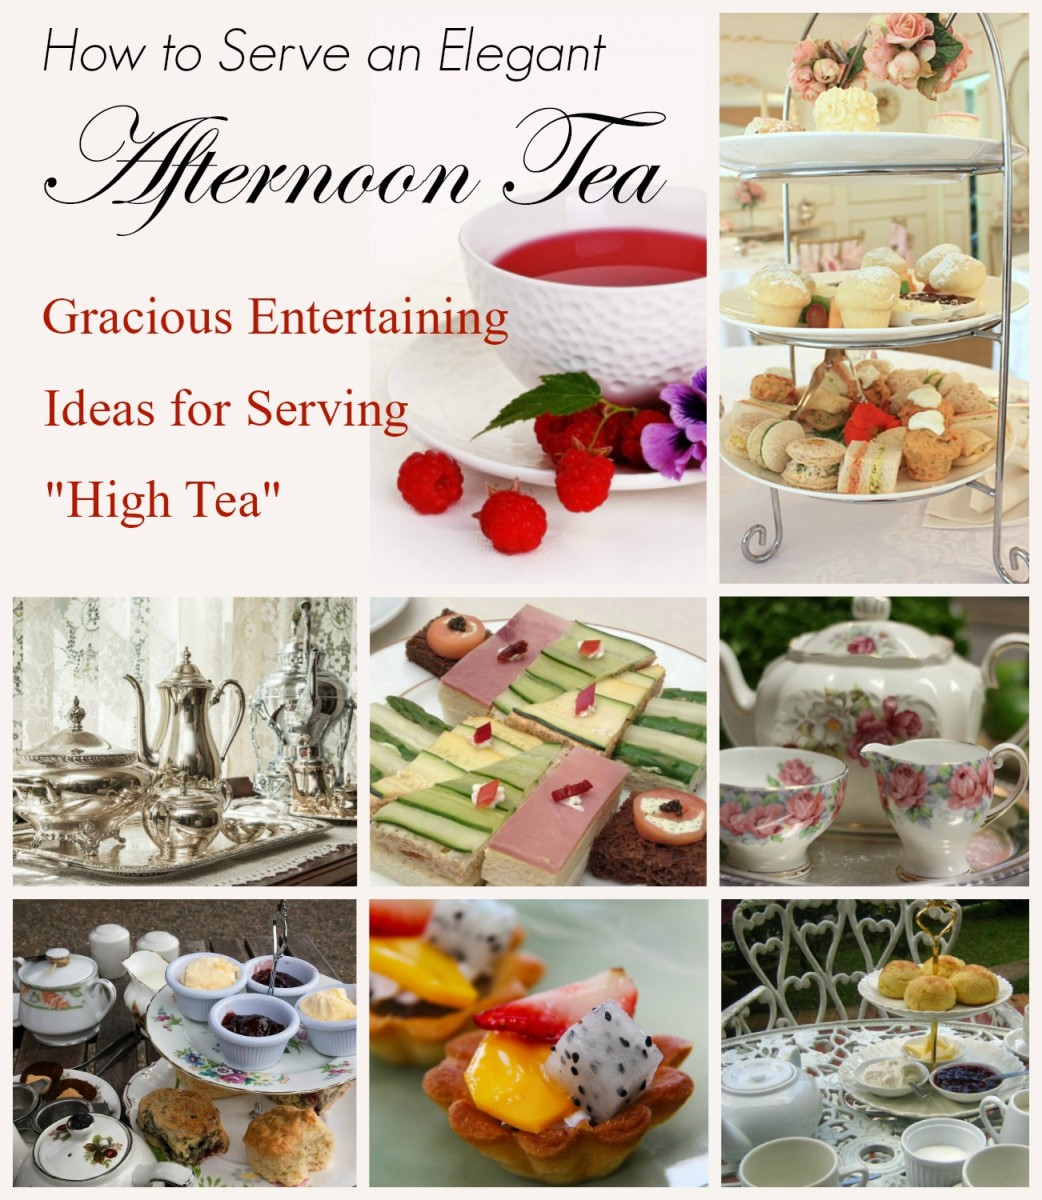 How To Serve An Elegant Afternoon Tea Delishably